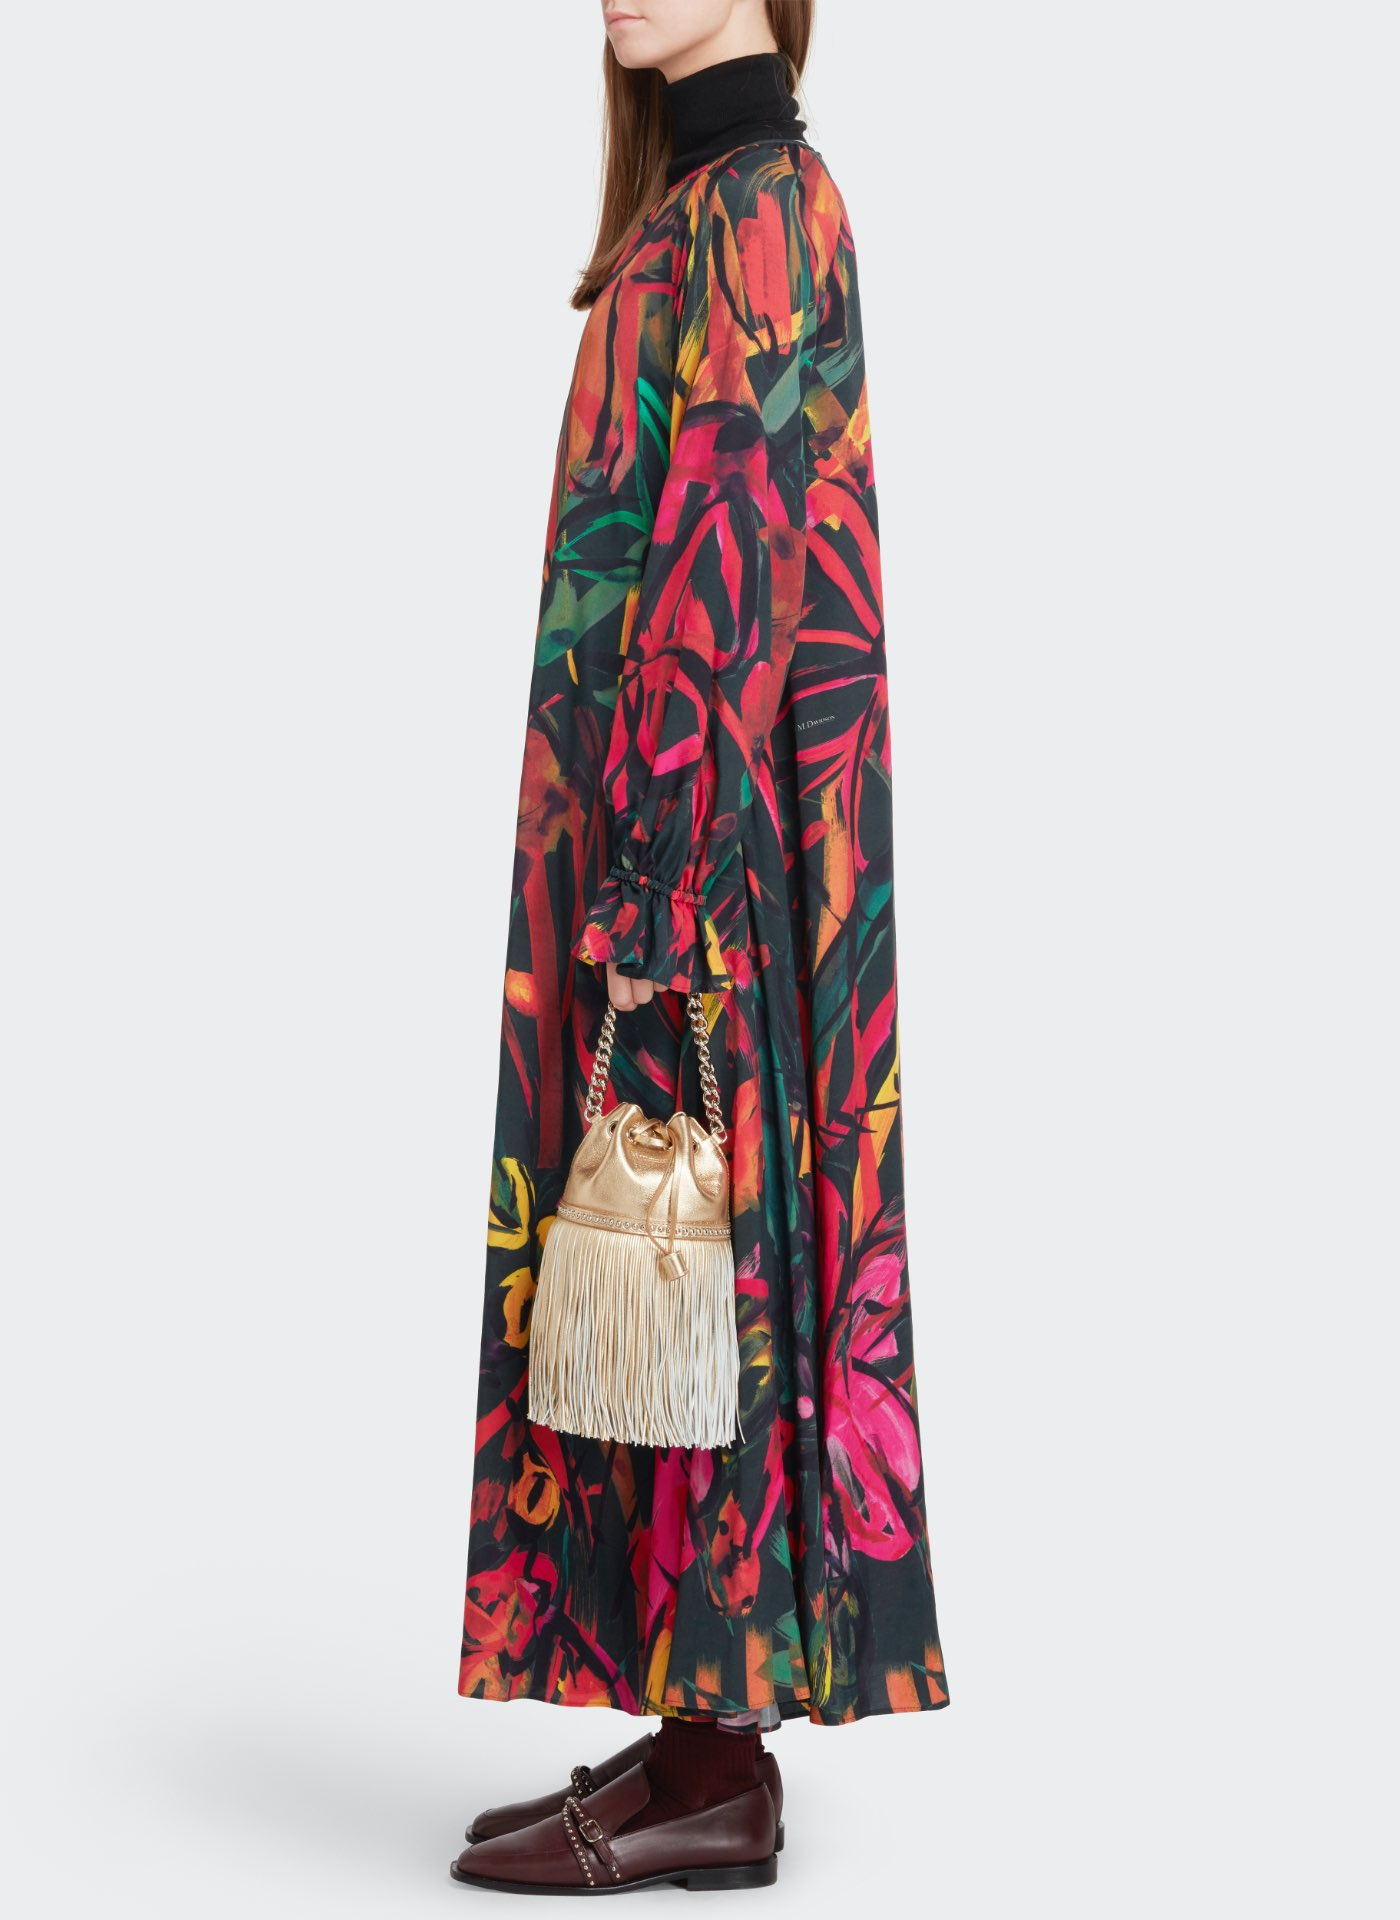 model with a J&M long multi colour dress with pale sand leather bag